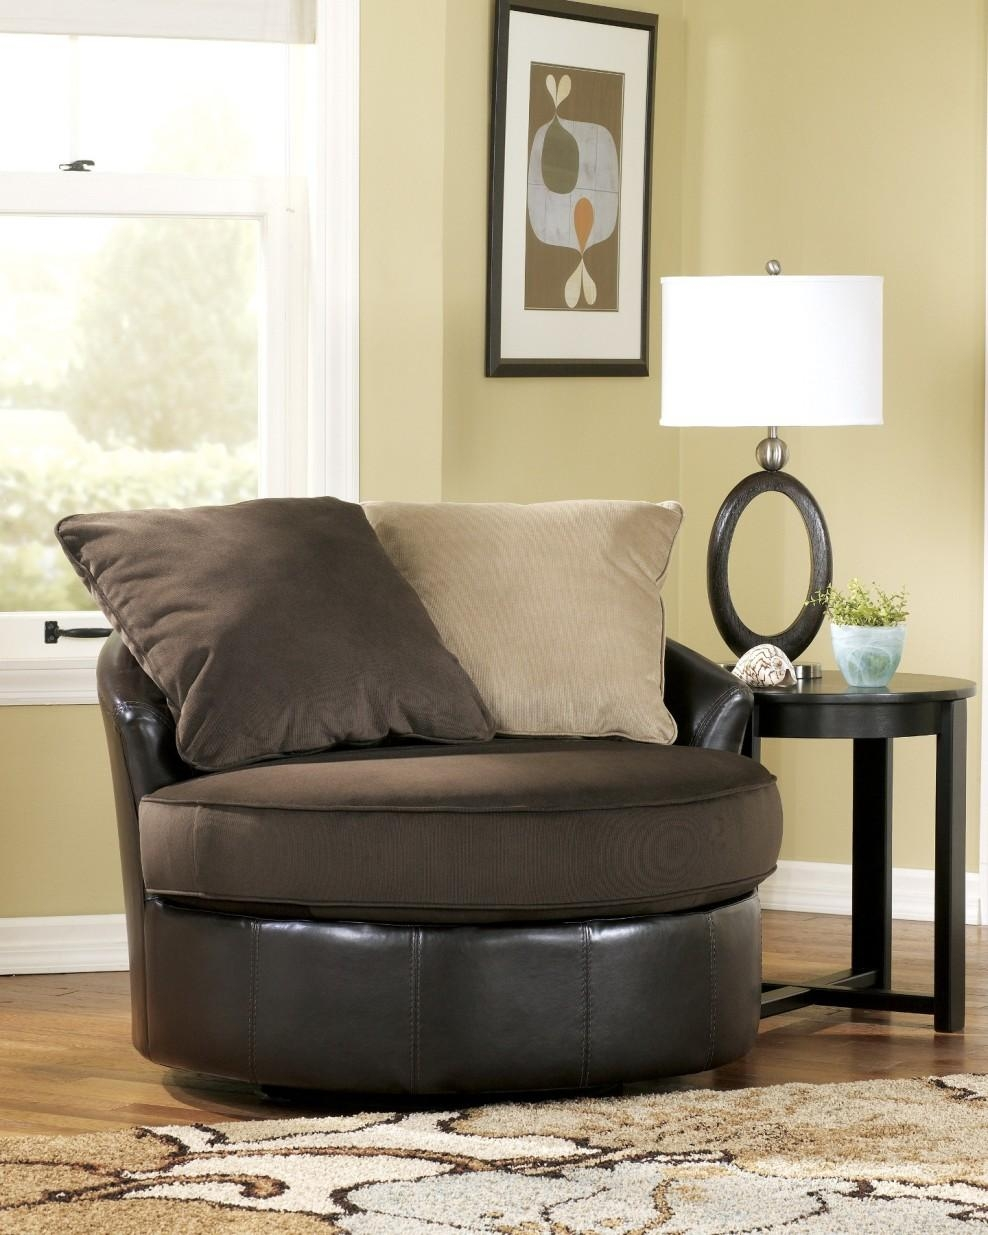 Round Swivel Sofa Chair 67 With Round Swivel Sofa Chair in Round Swivel Sofa Chairs